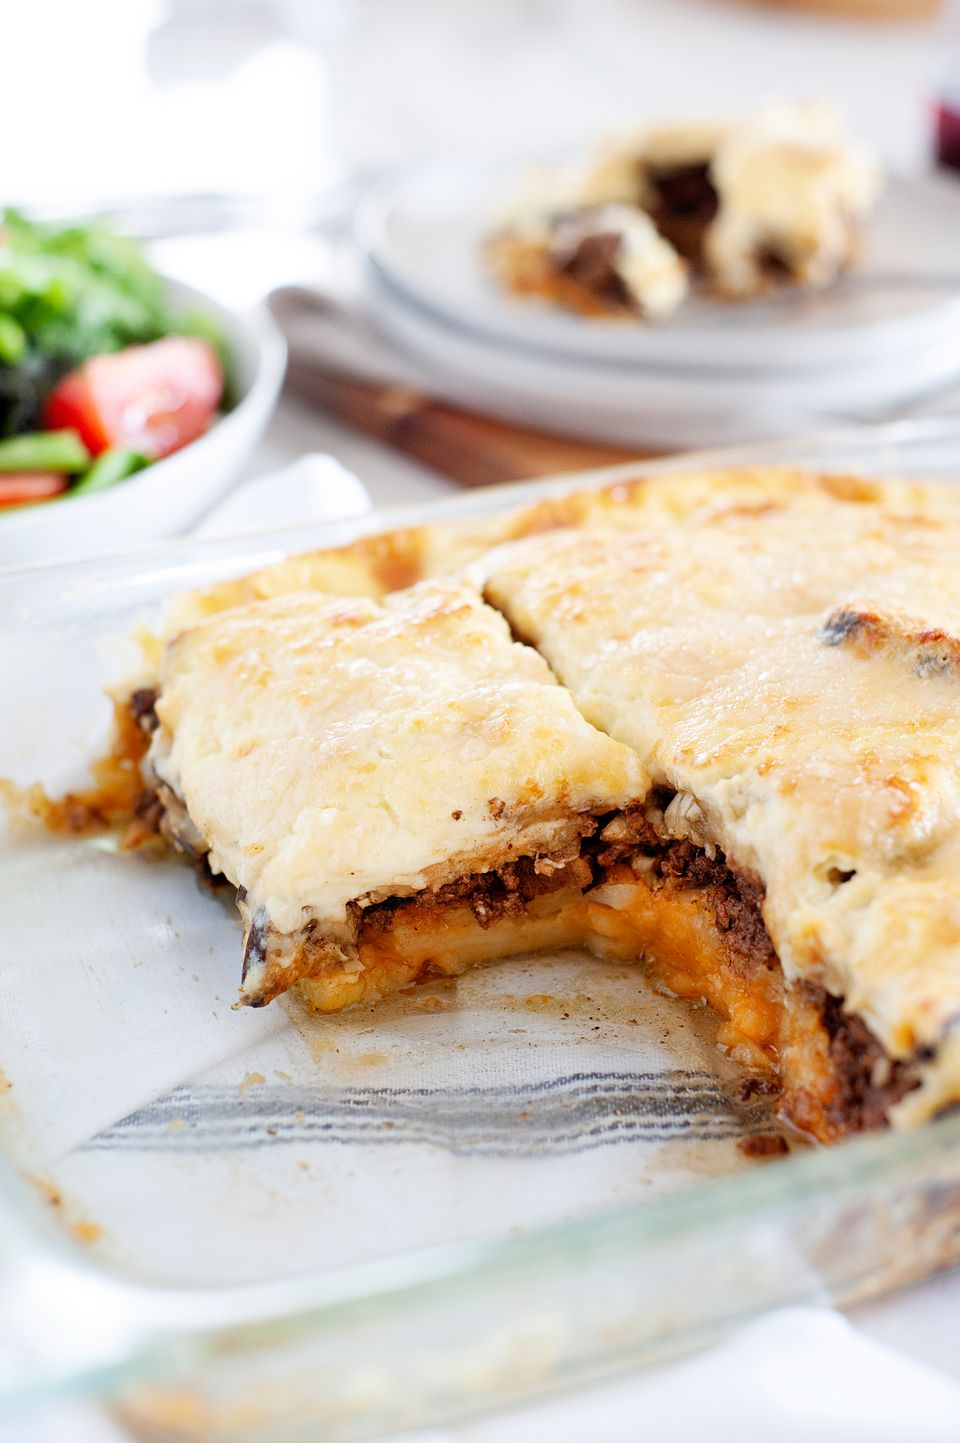 Sliced greek moussaka in a glass baking dish with a piece removed.